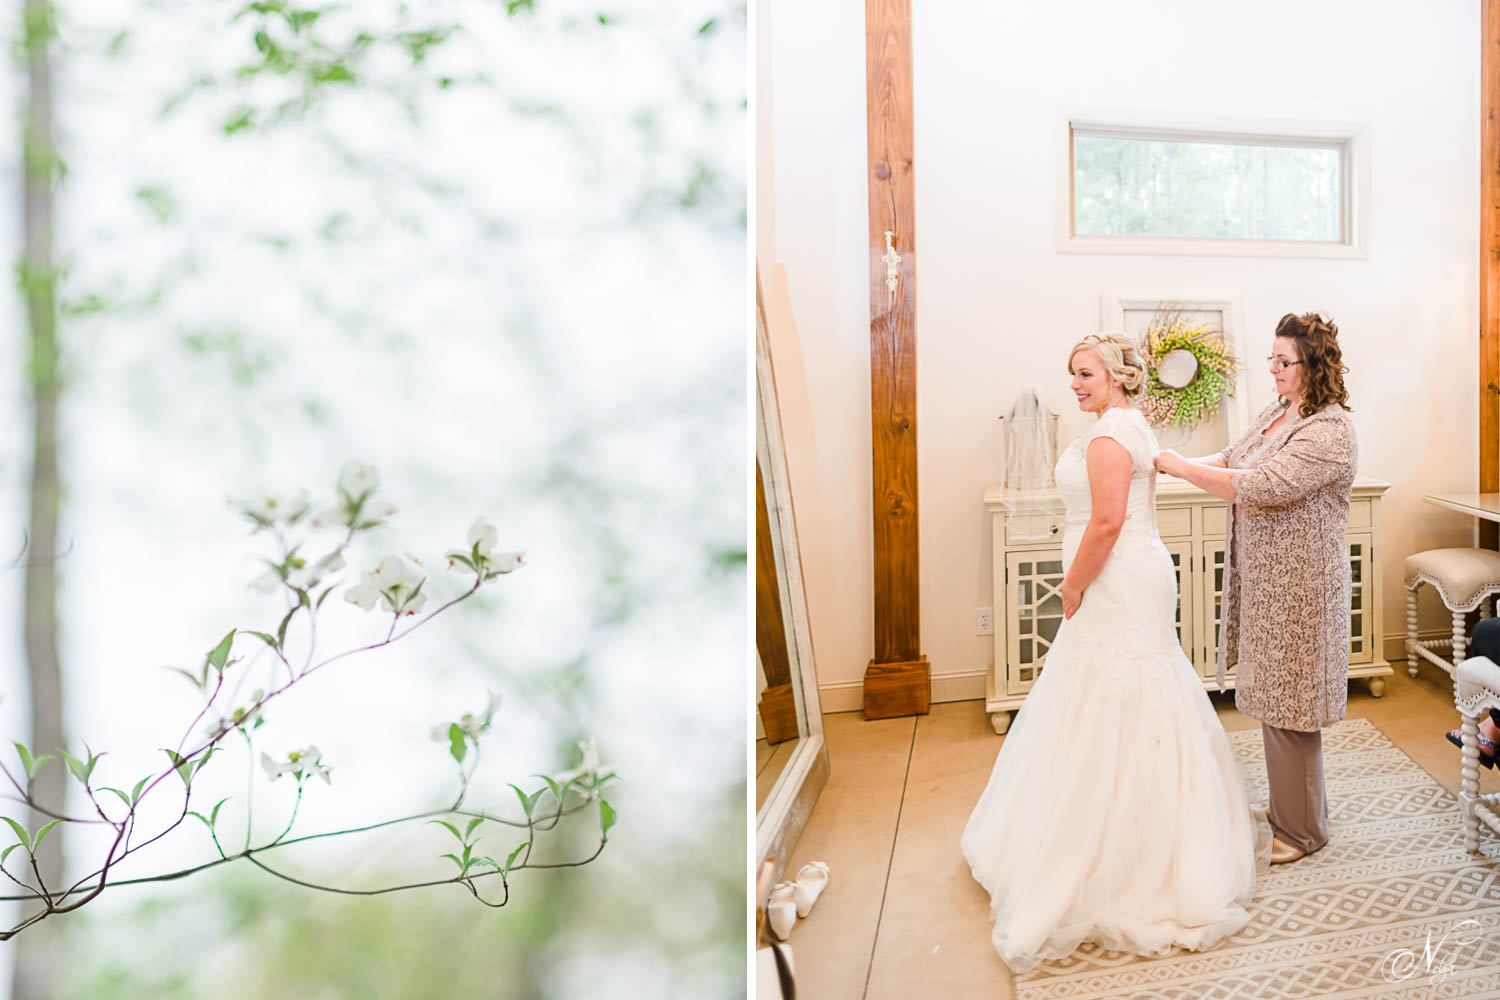 dogwood blossoms. And a bride getting in her wedding dress in the bridal suite at Hiwassee River Weddings